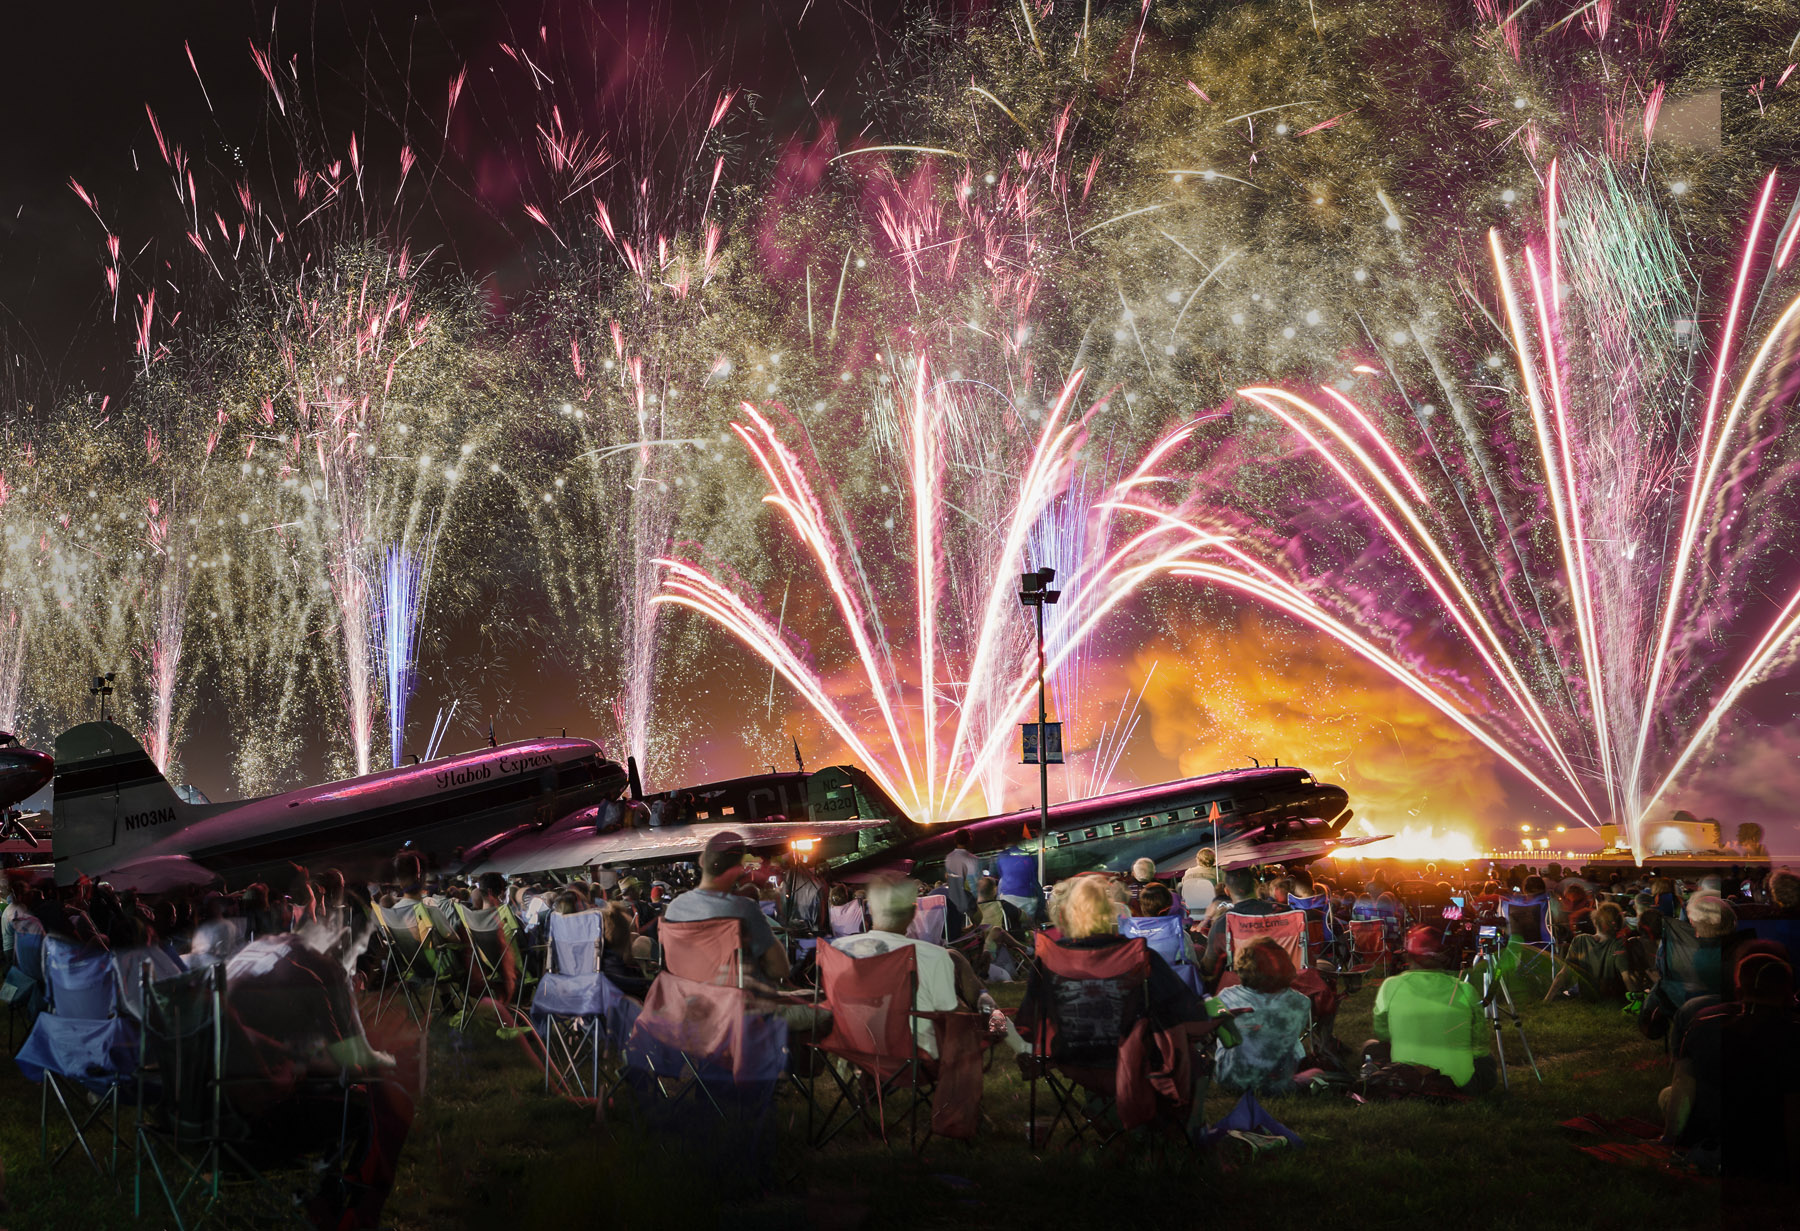 Photos: Night Airshow And More From EAA AirVenture Oshkosh 2019